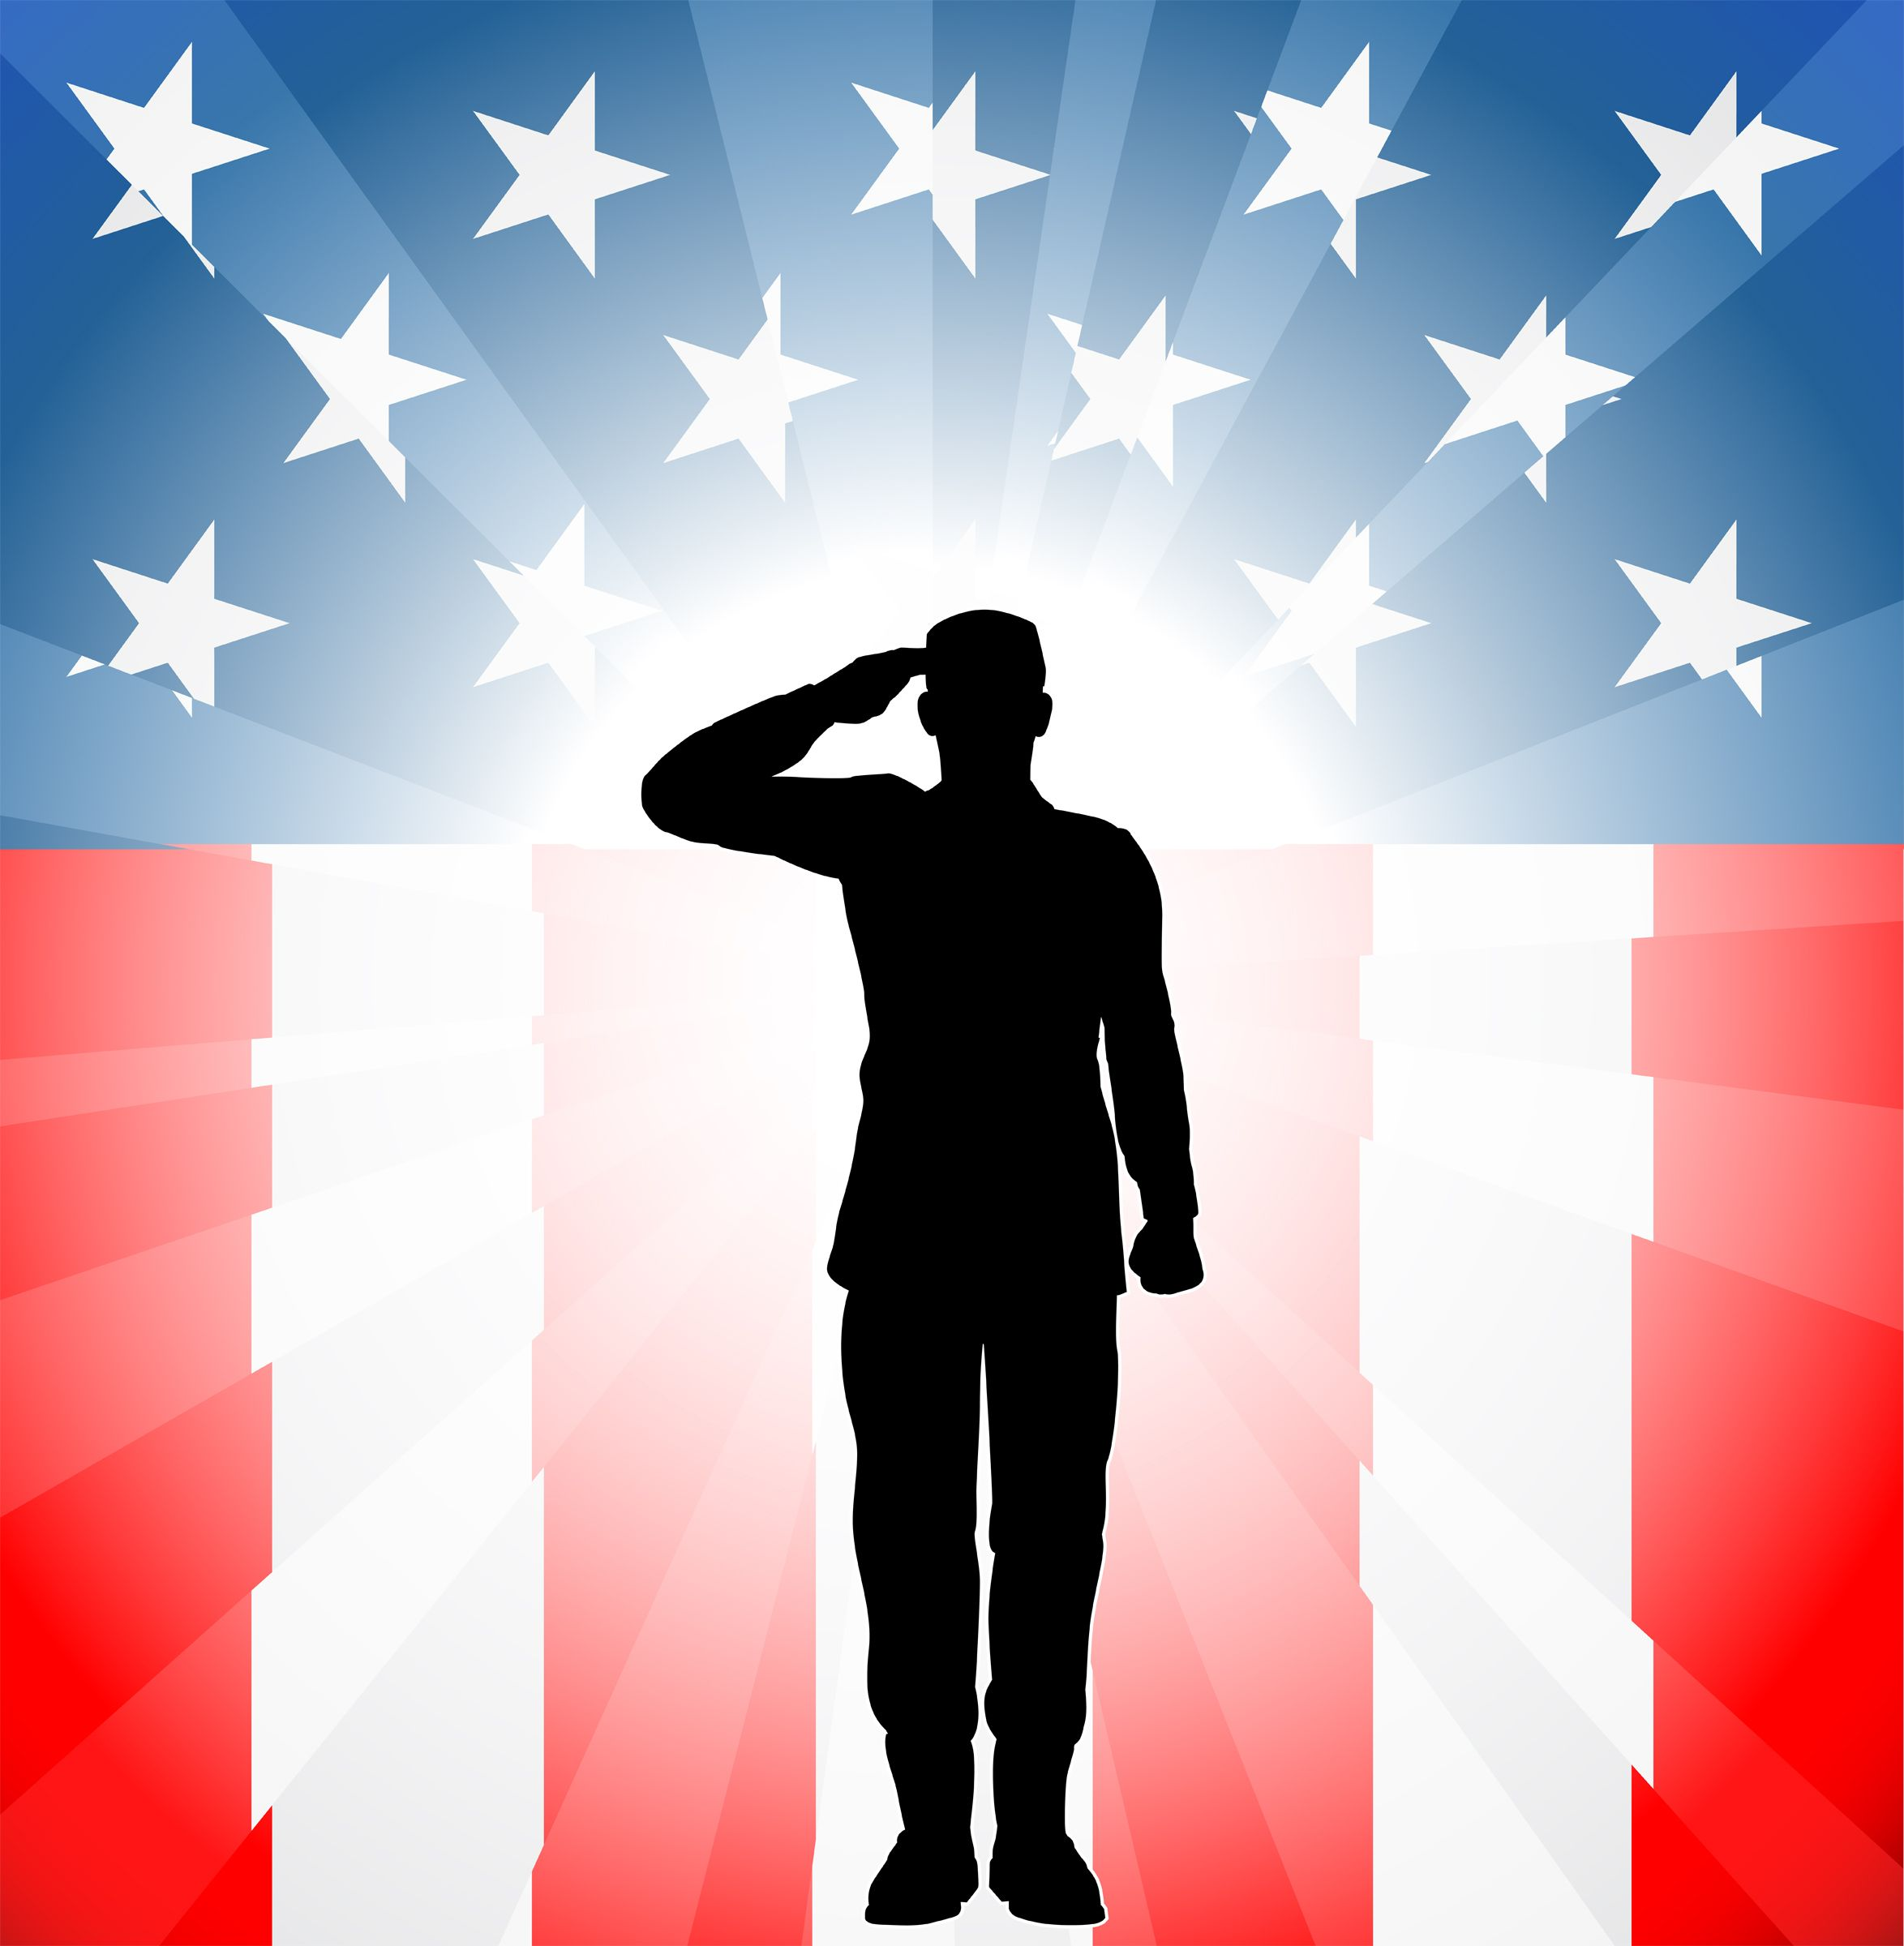 Military clipart veterans parade. Day clip art soldier